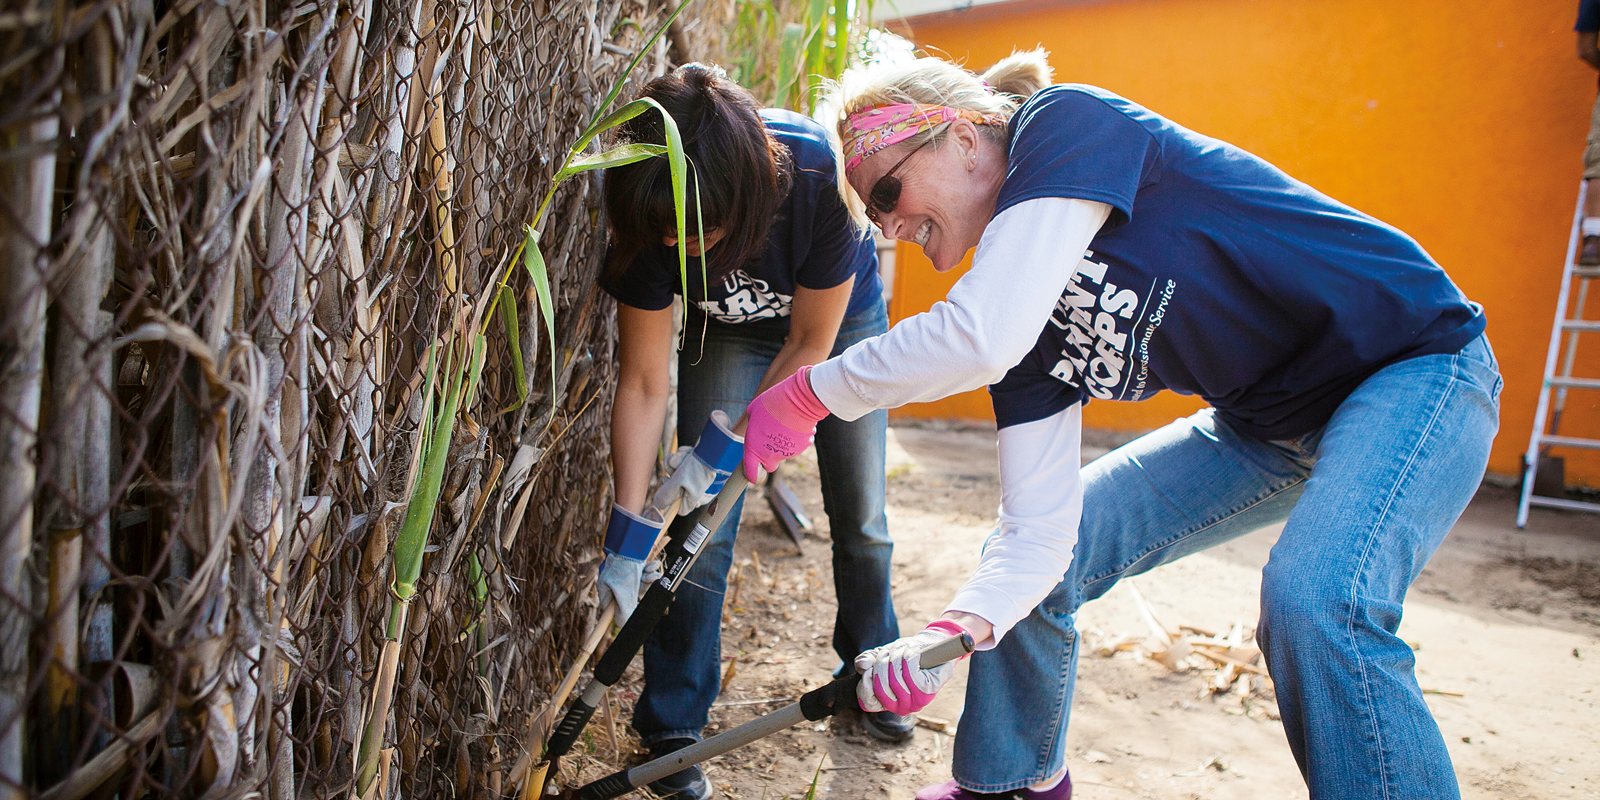 USD Parent Corps members work on a local project